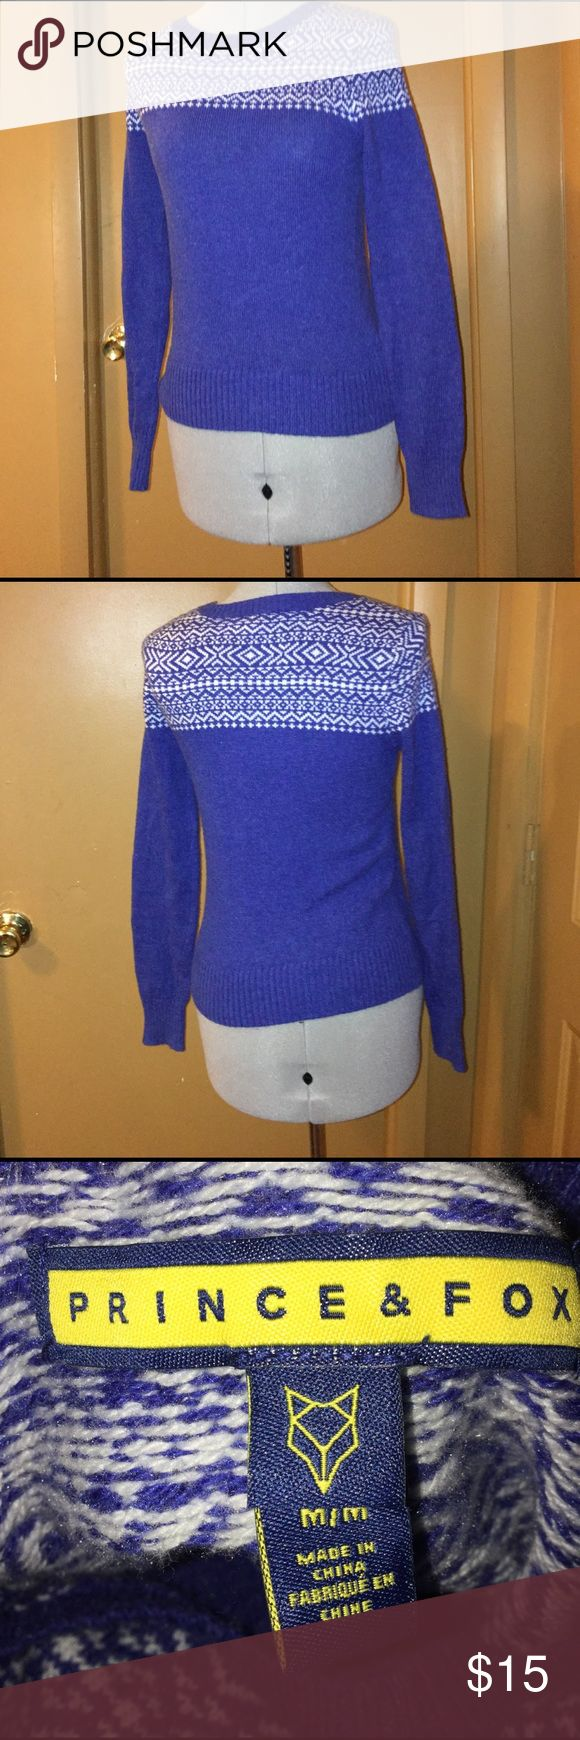 Prince and Fox sweater size Medium. Blue and White Prince and Fox sweater size Medium. Smoke free home and dog mom. Prince and Fox Sweaters